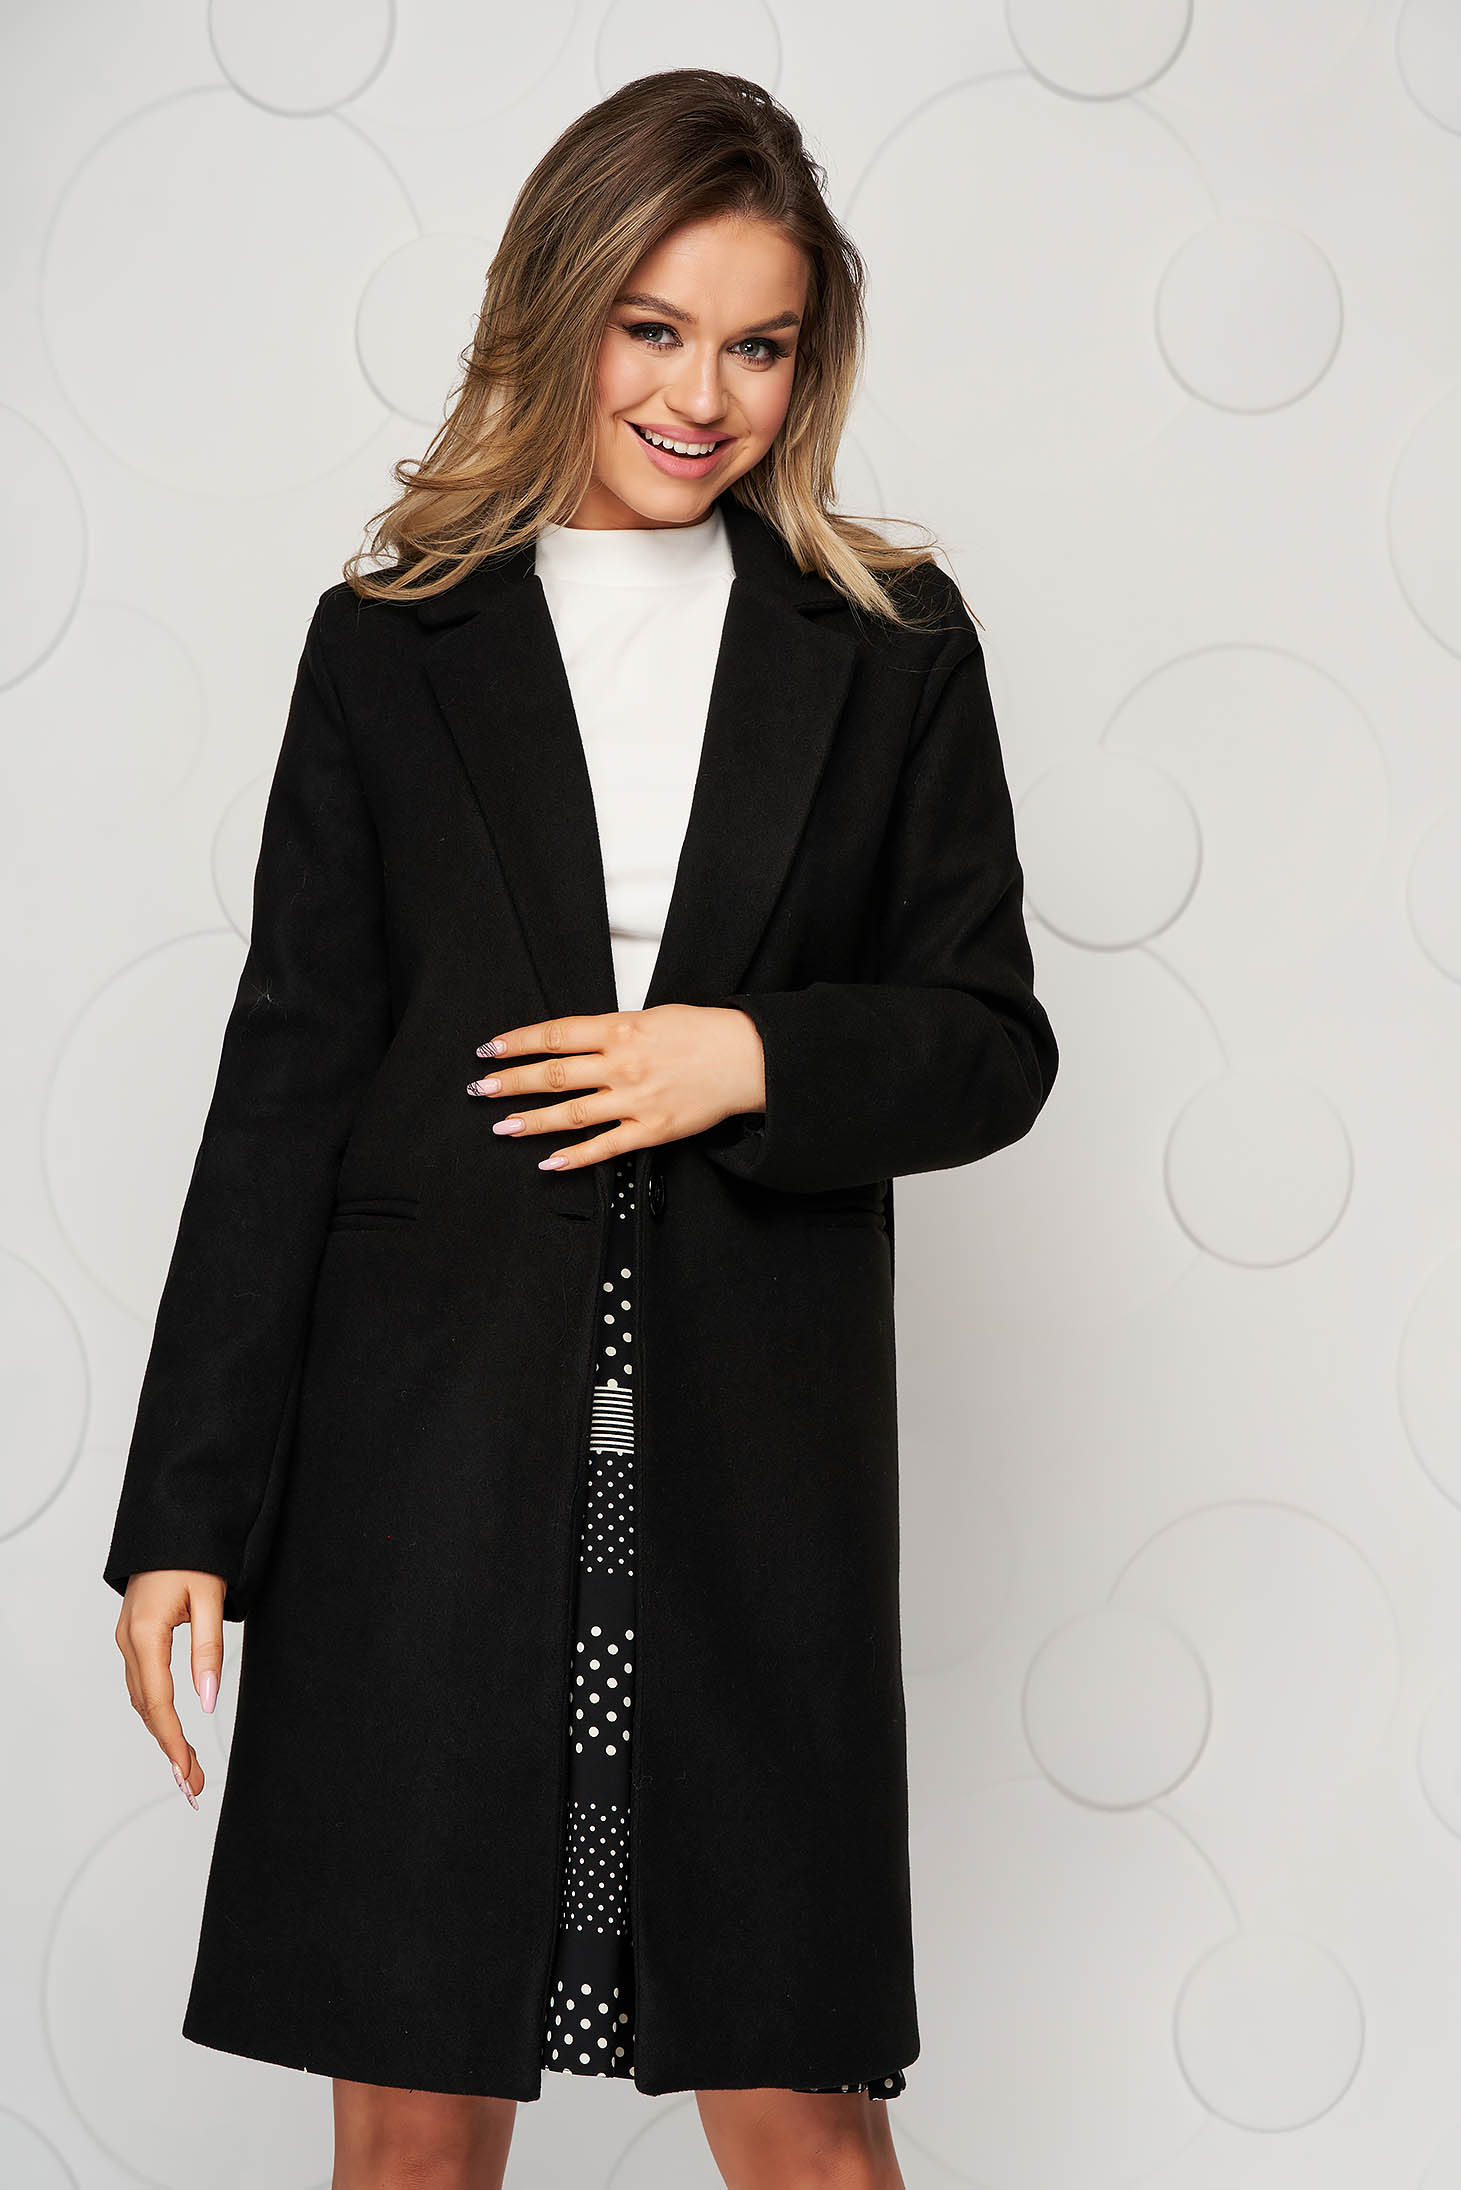 Black coat office cloth straight with pockets